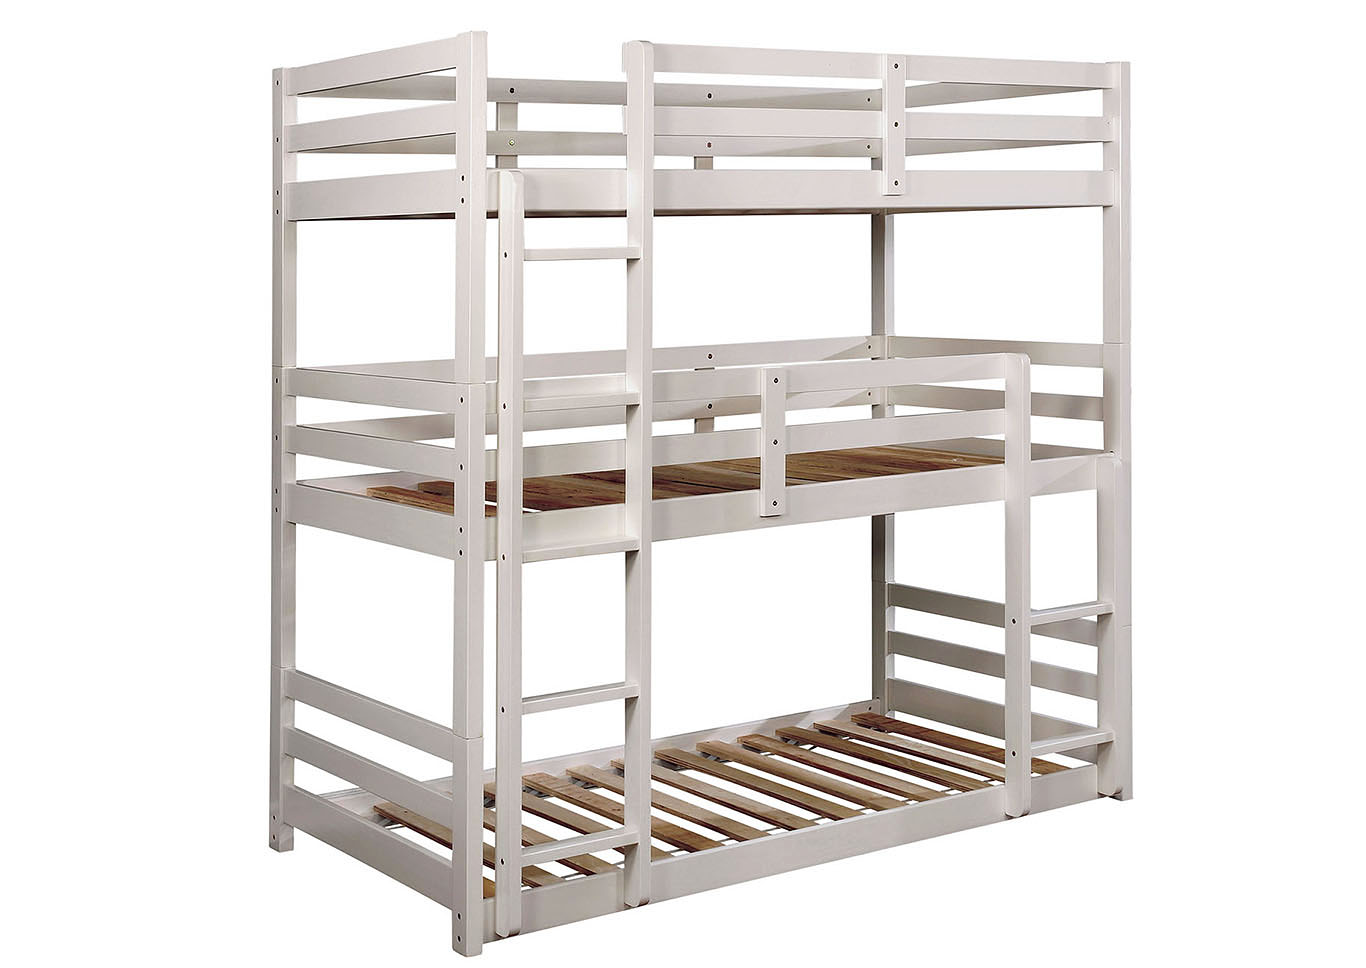 California V White Twin/Twin/Twin 3-Tiered Bunk Bed,Furniture of America